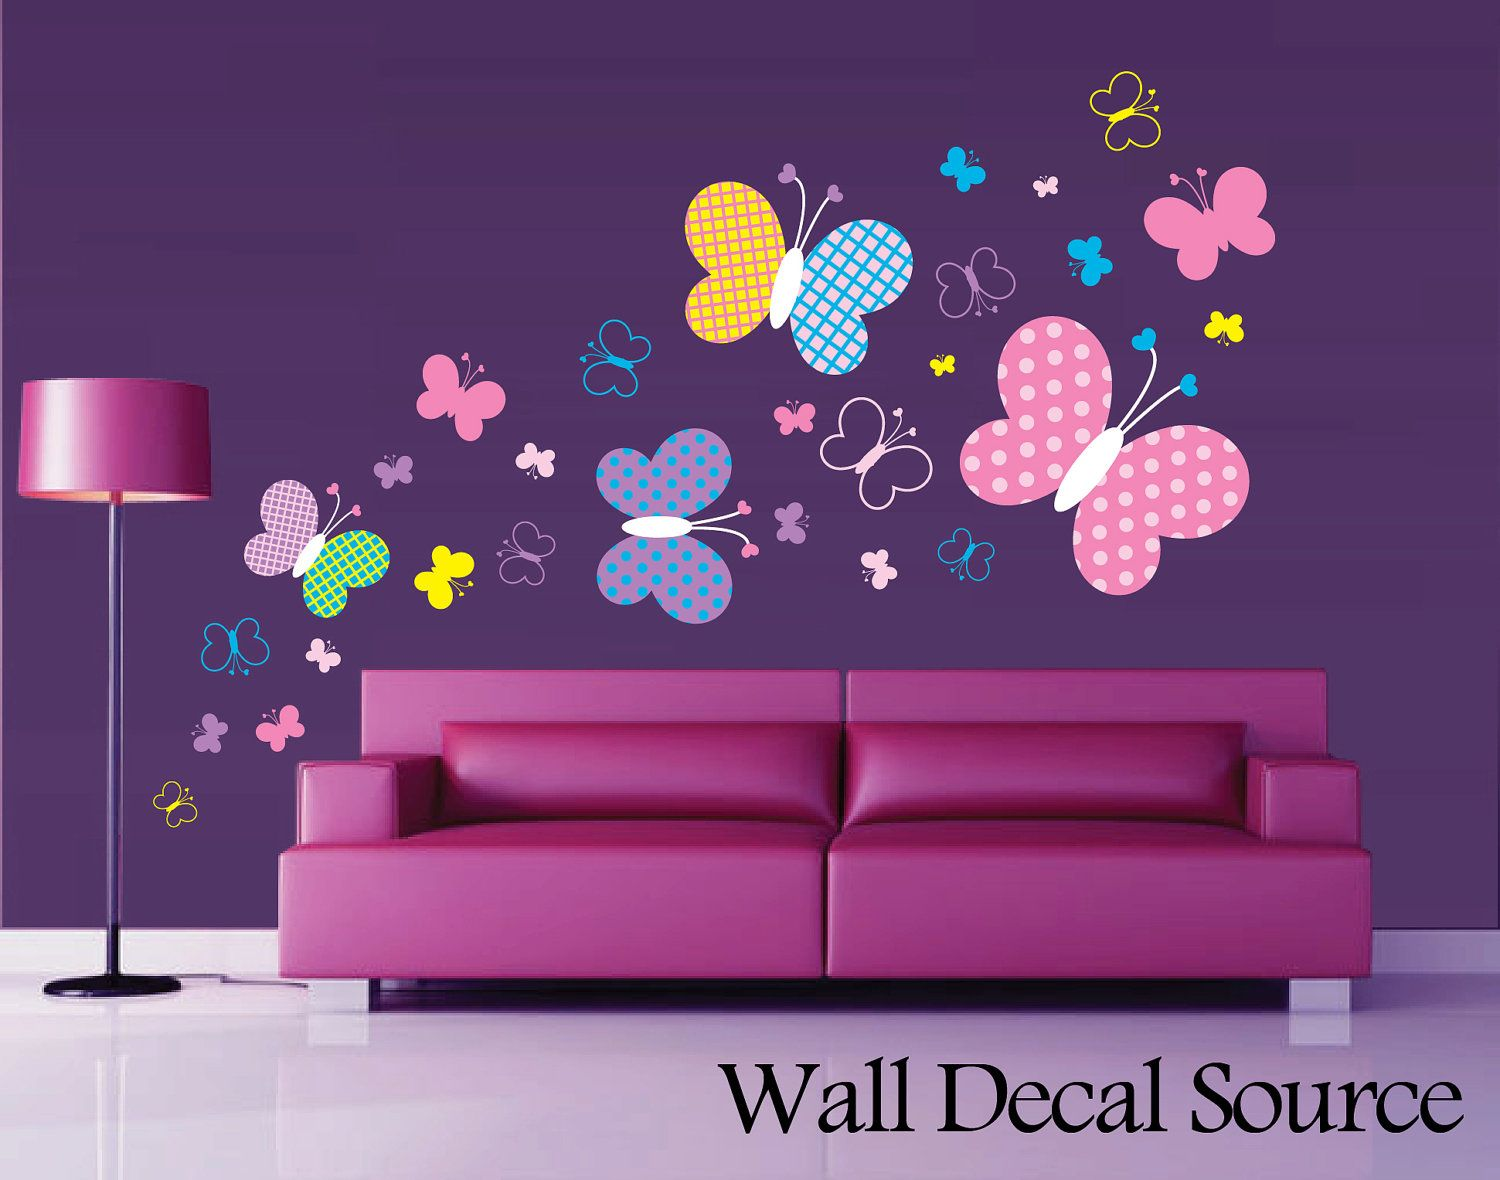 High Quality Patterned Butterfly Wall Decal Vinyl Butterfly By WallDecalSource, $50.00